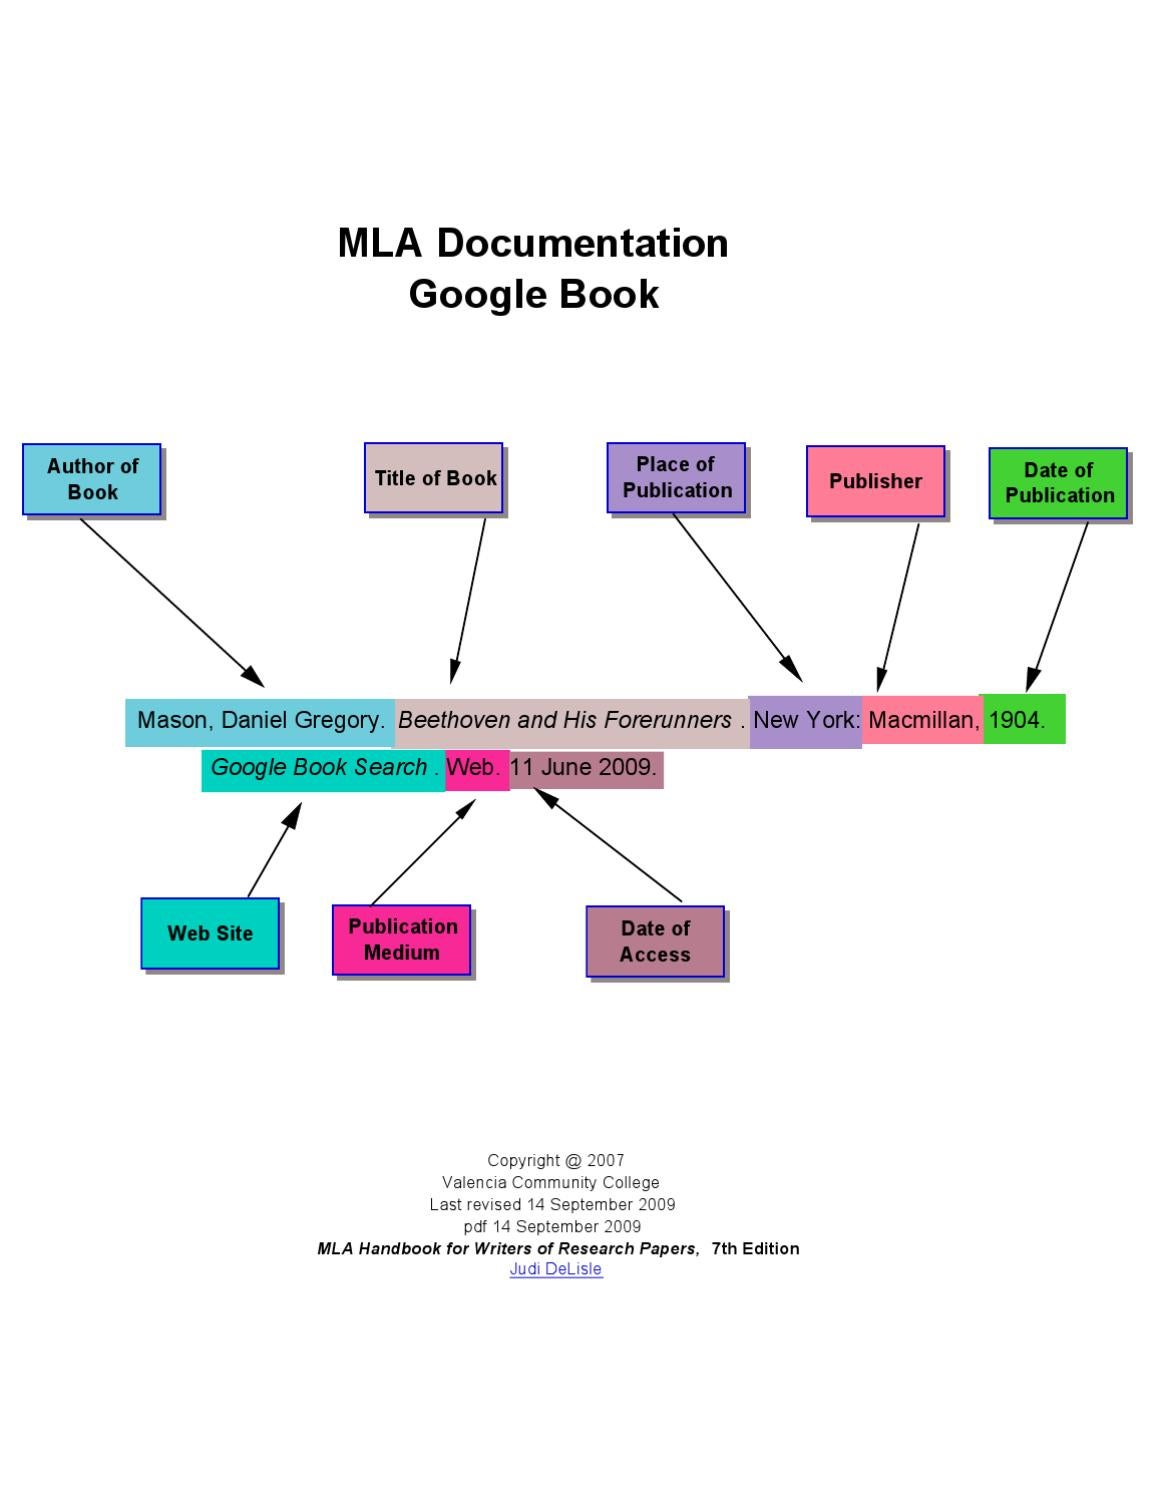 mla handbook for writers of research papers pdf free download